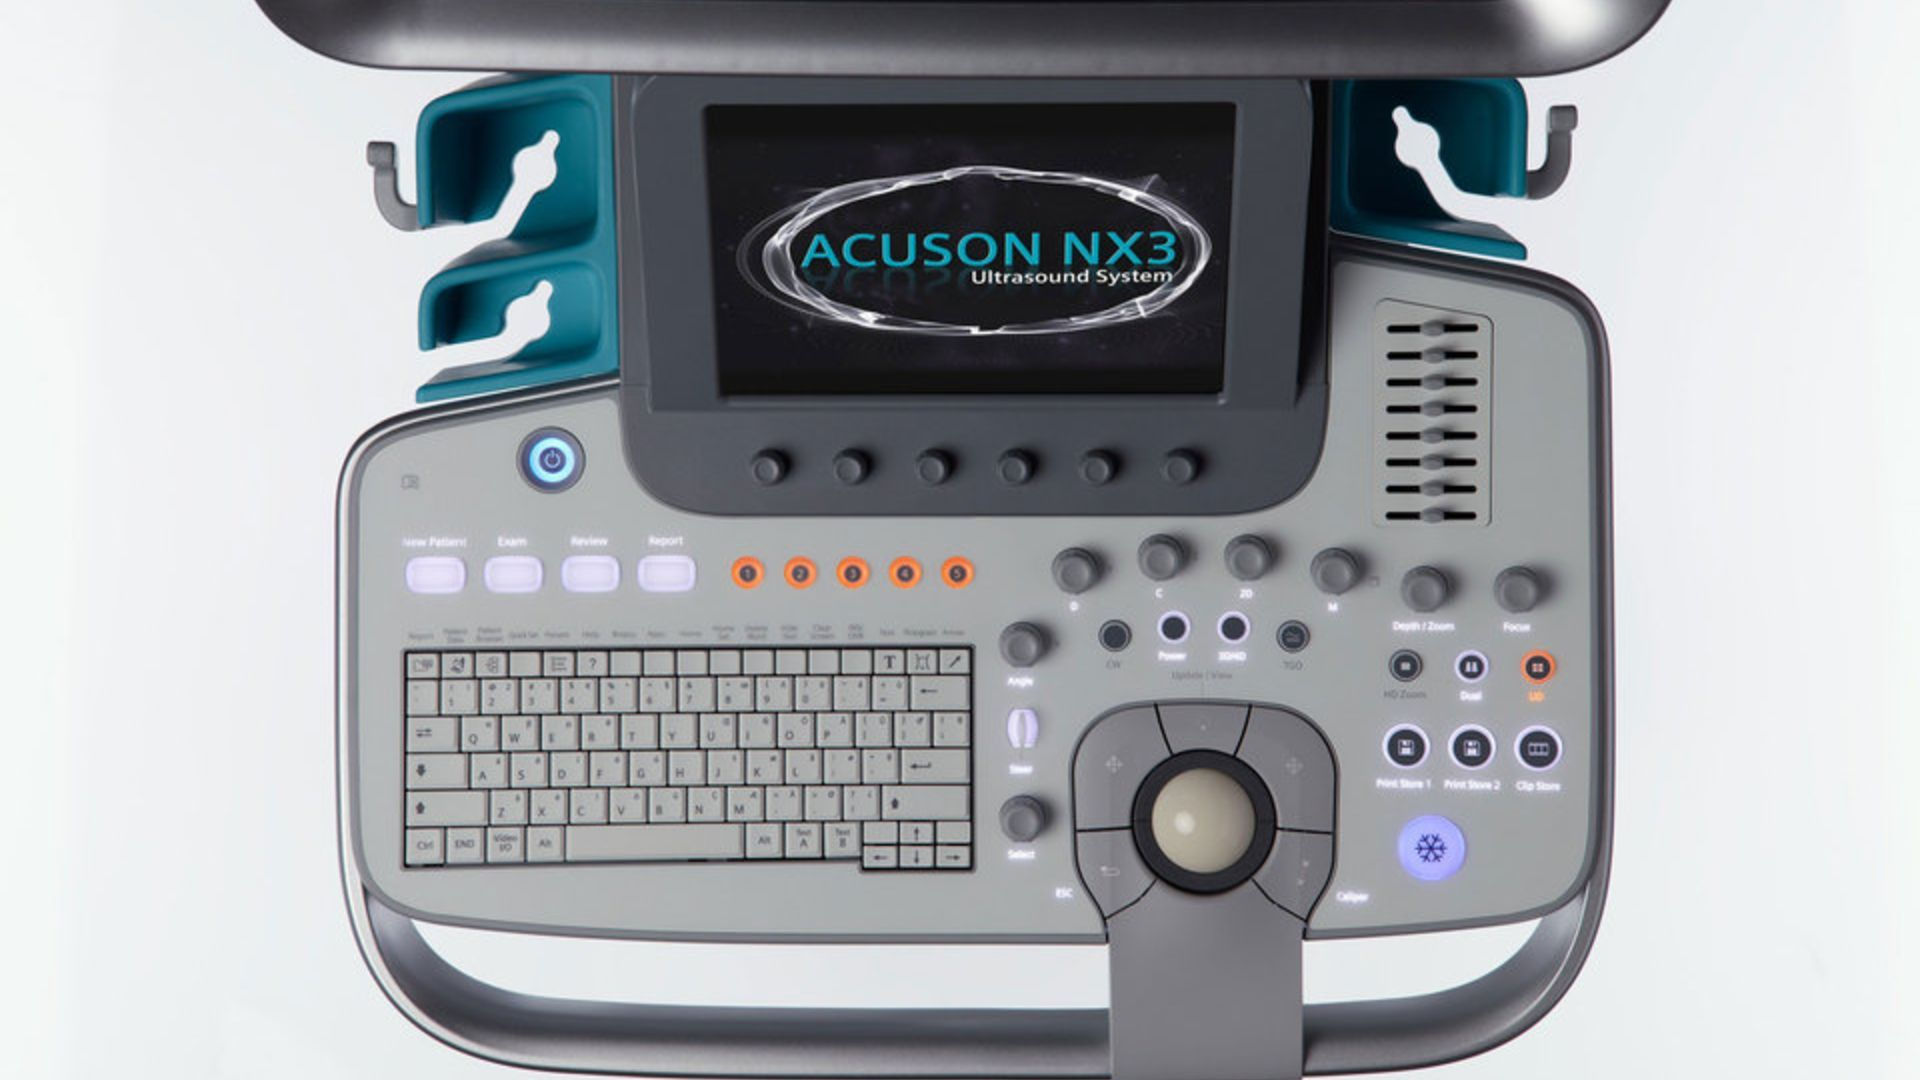 control_panel_view_top_acuson_nx3-02478260_10-06557832_8